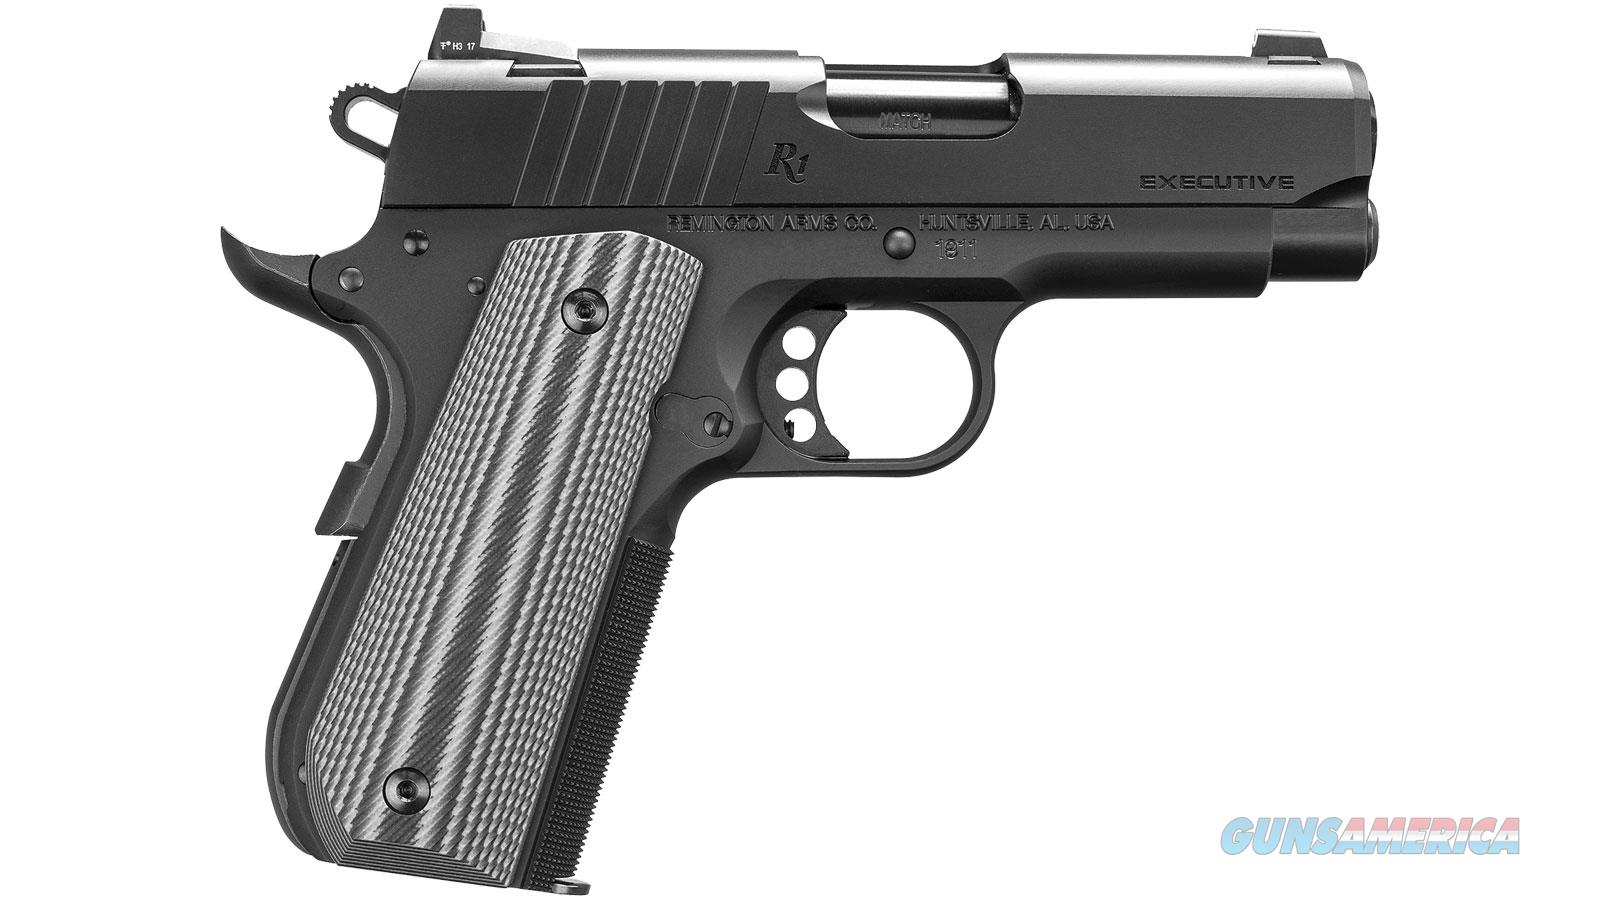 Remington 1911 R1 45Acp 7+1 Ultralight Excu 3.5 96493  Guns > Pistols > R Misc Pistols